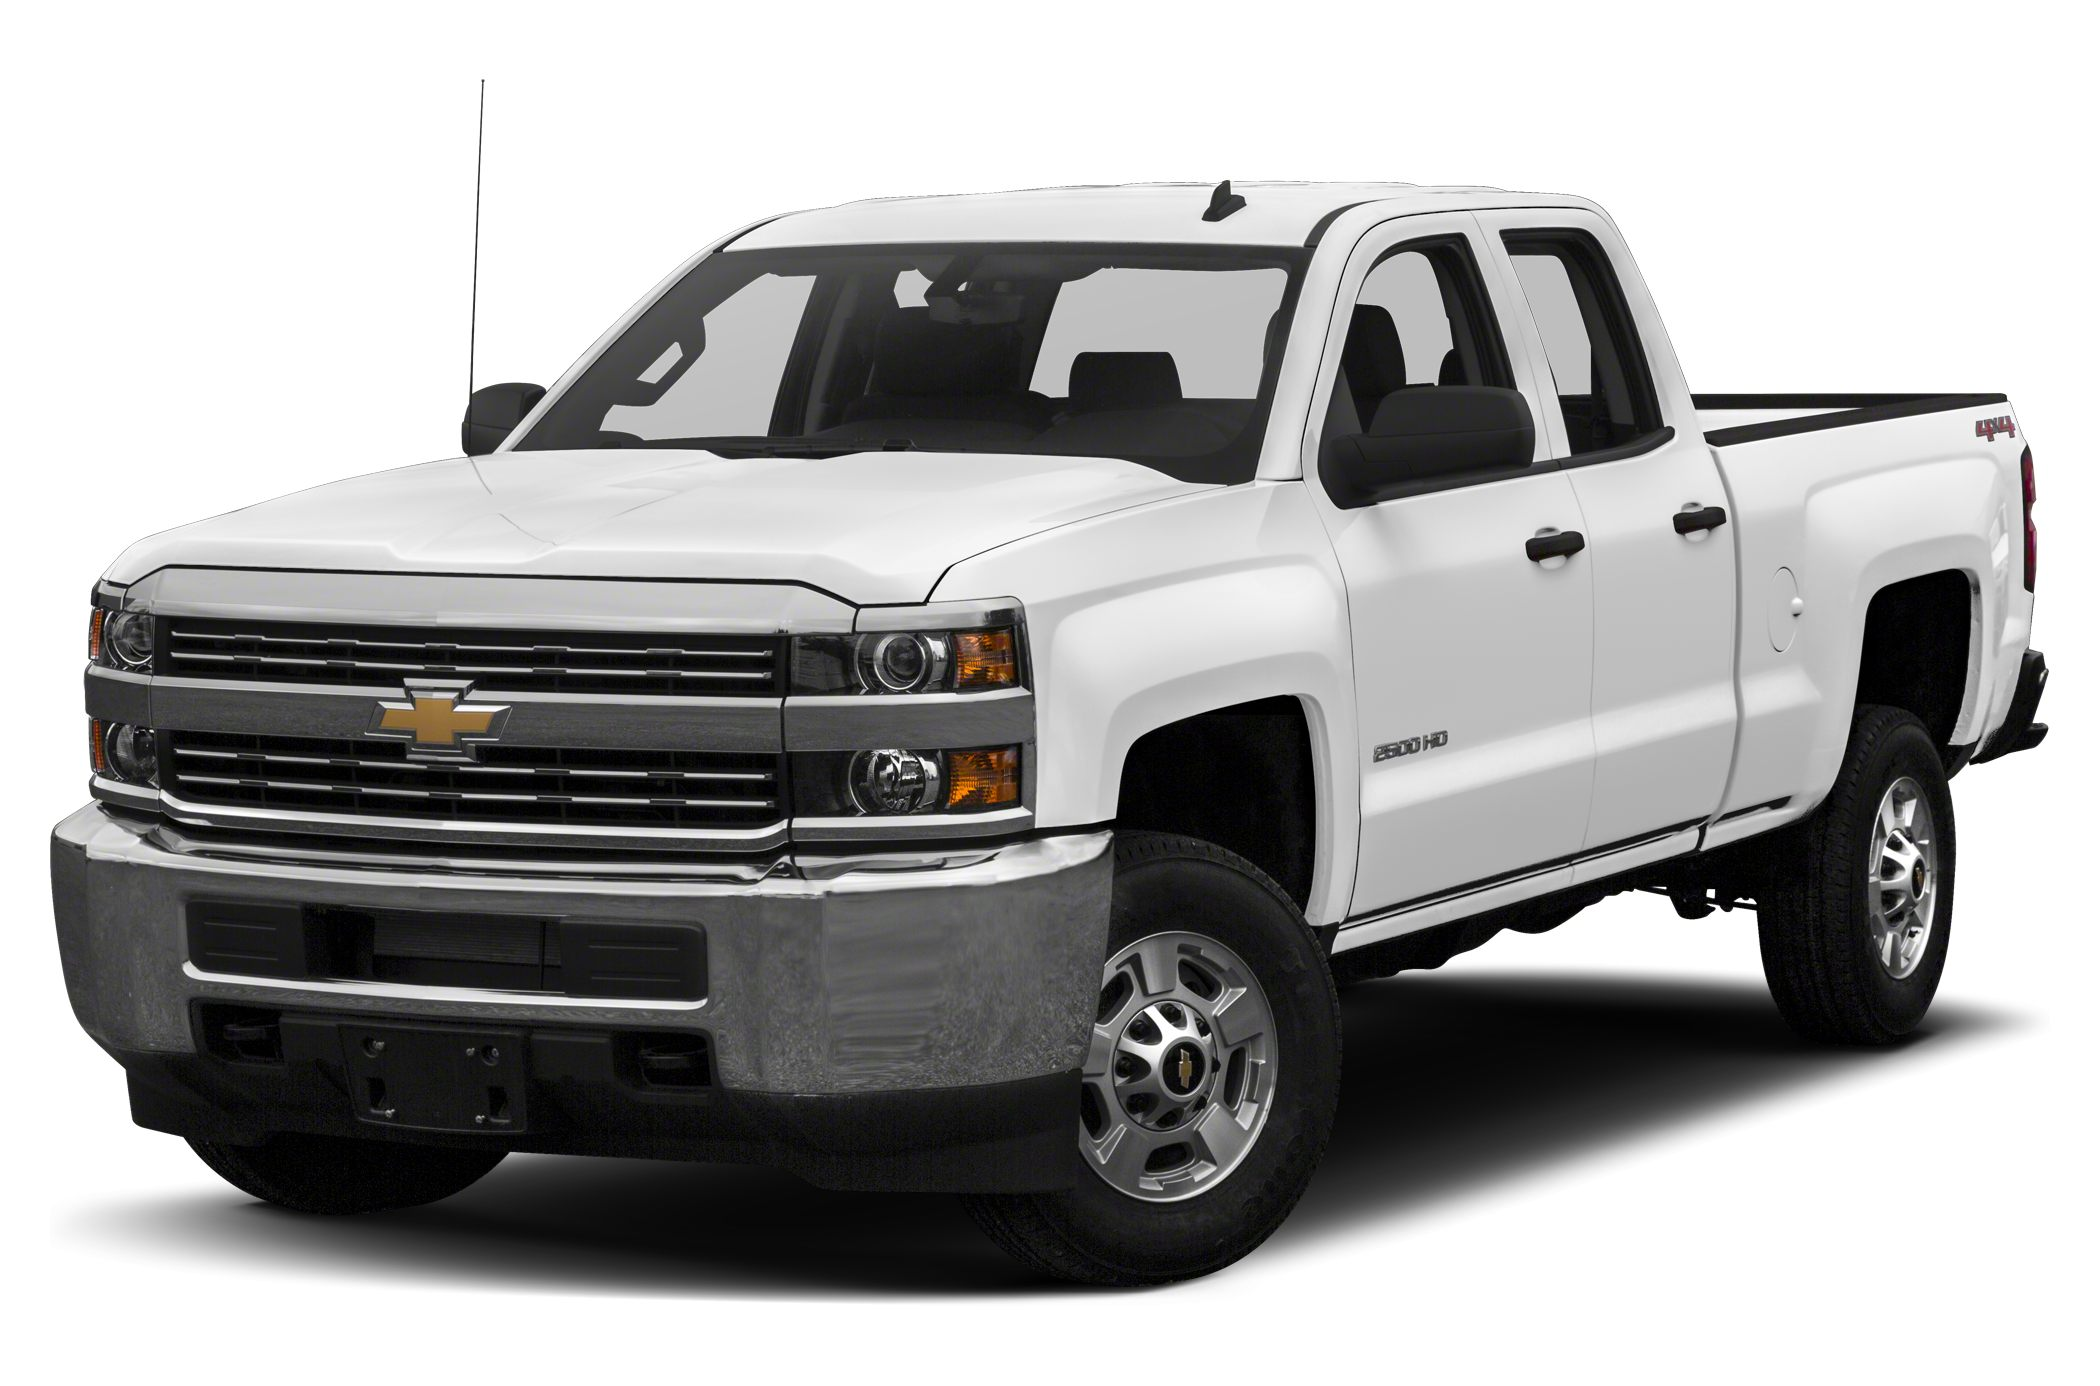 2015 Chevrolet Silverado 2500 WT Regular Cab Pickup for sale in Irwin for $37,600 with 145 miles.